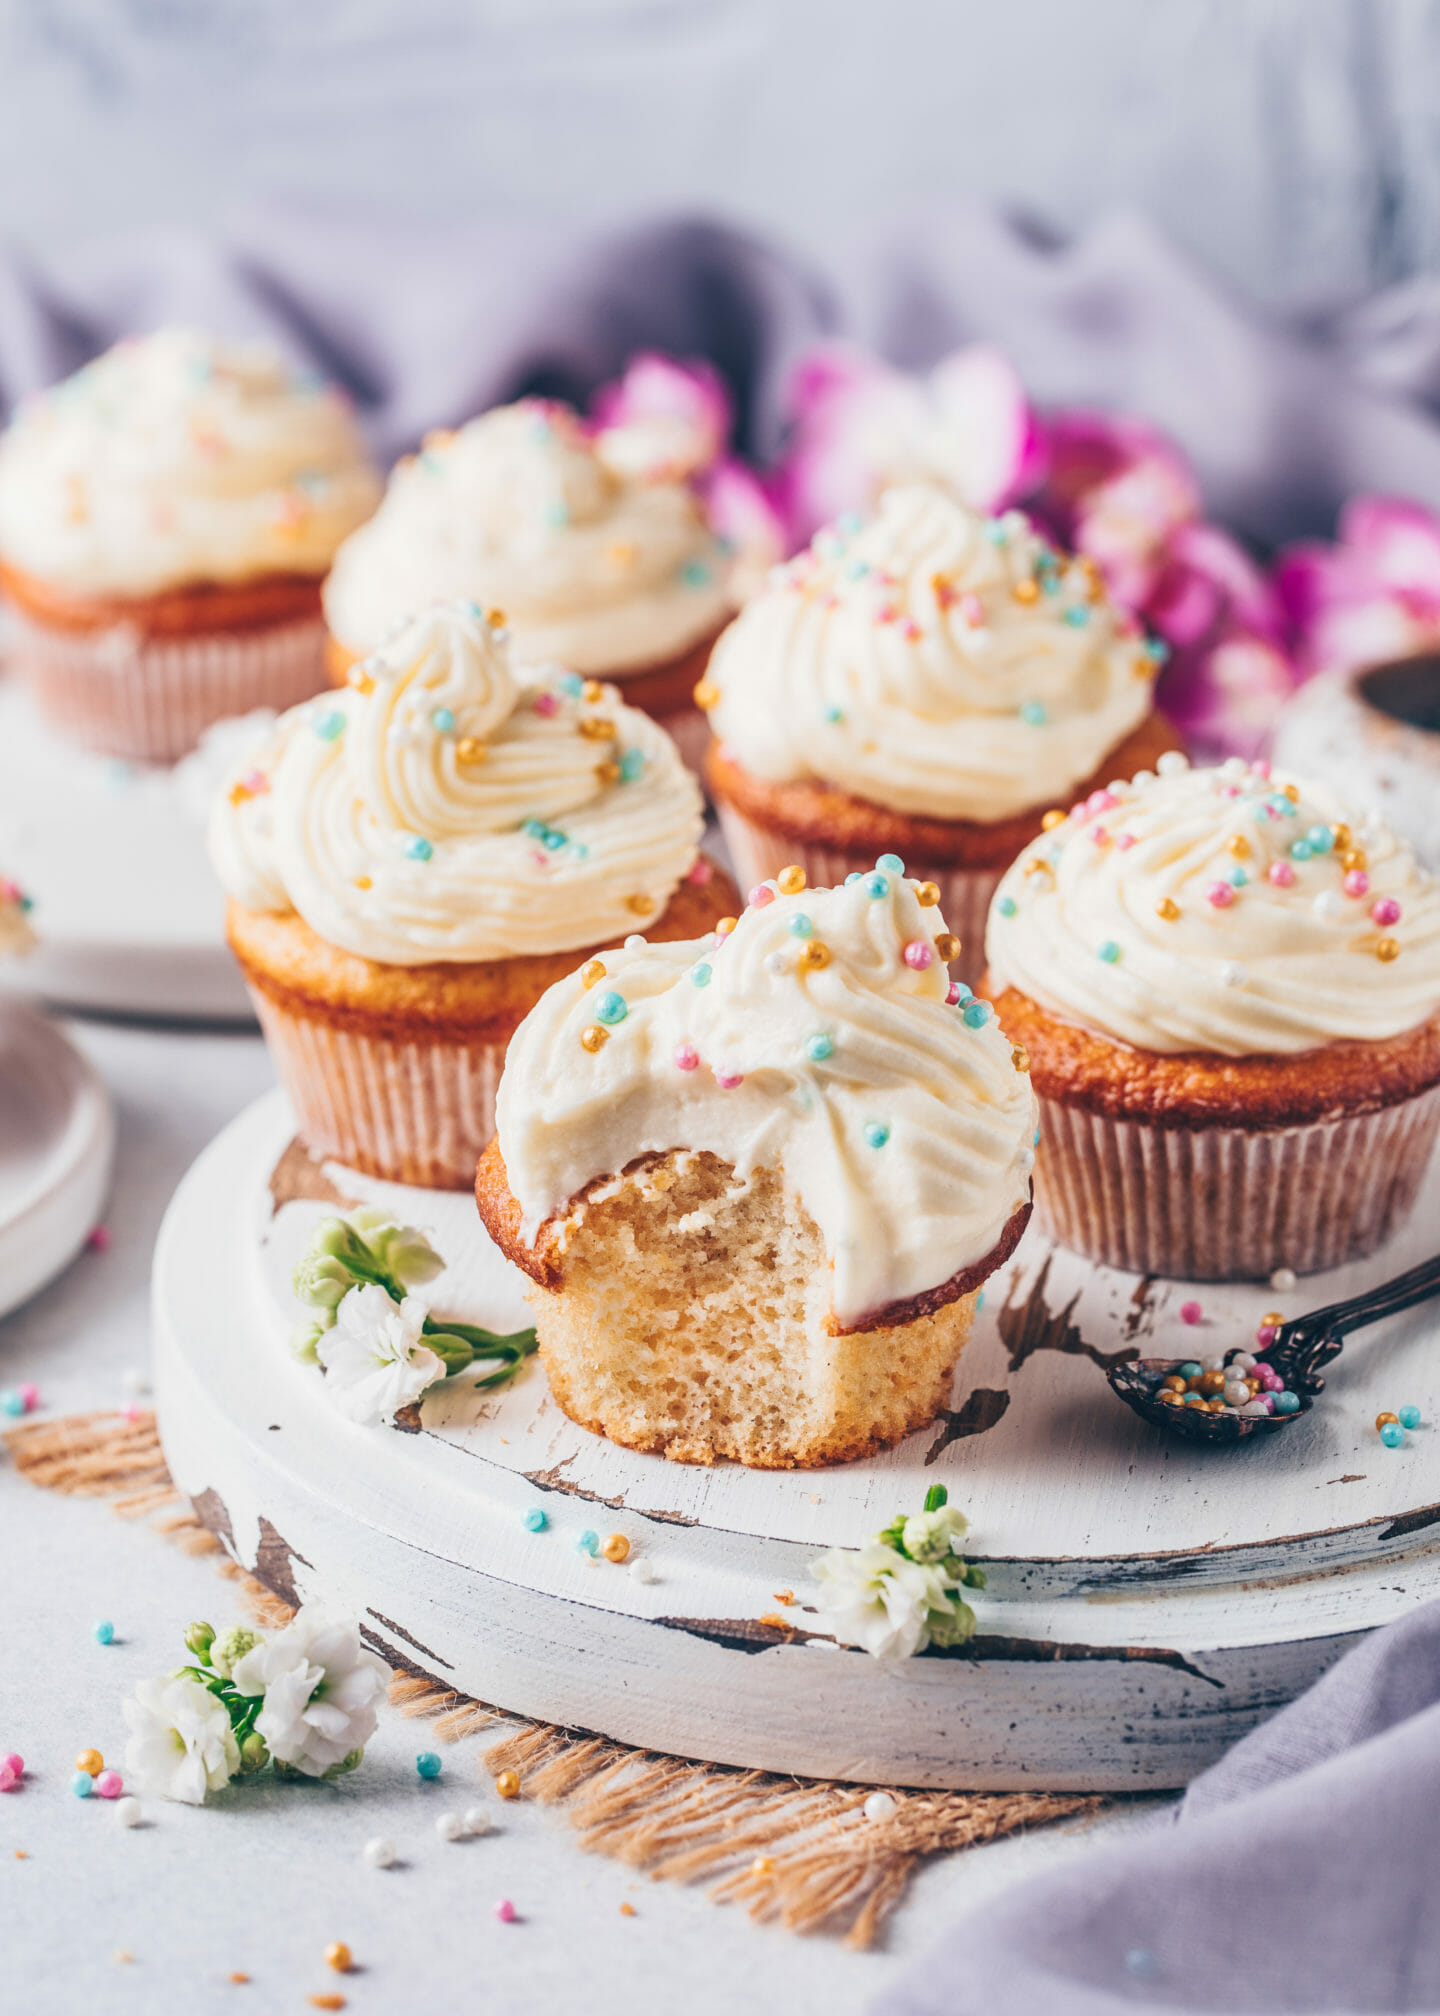 vanilla cupcakes with buttercream frosting and sprinkles (easy vegan fluffy muffins)